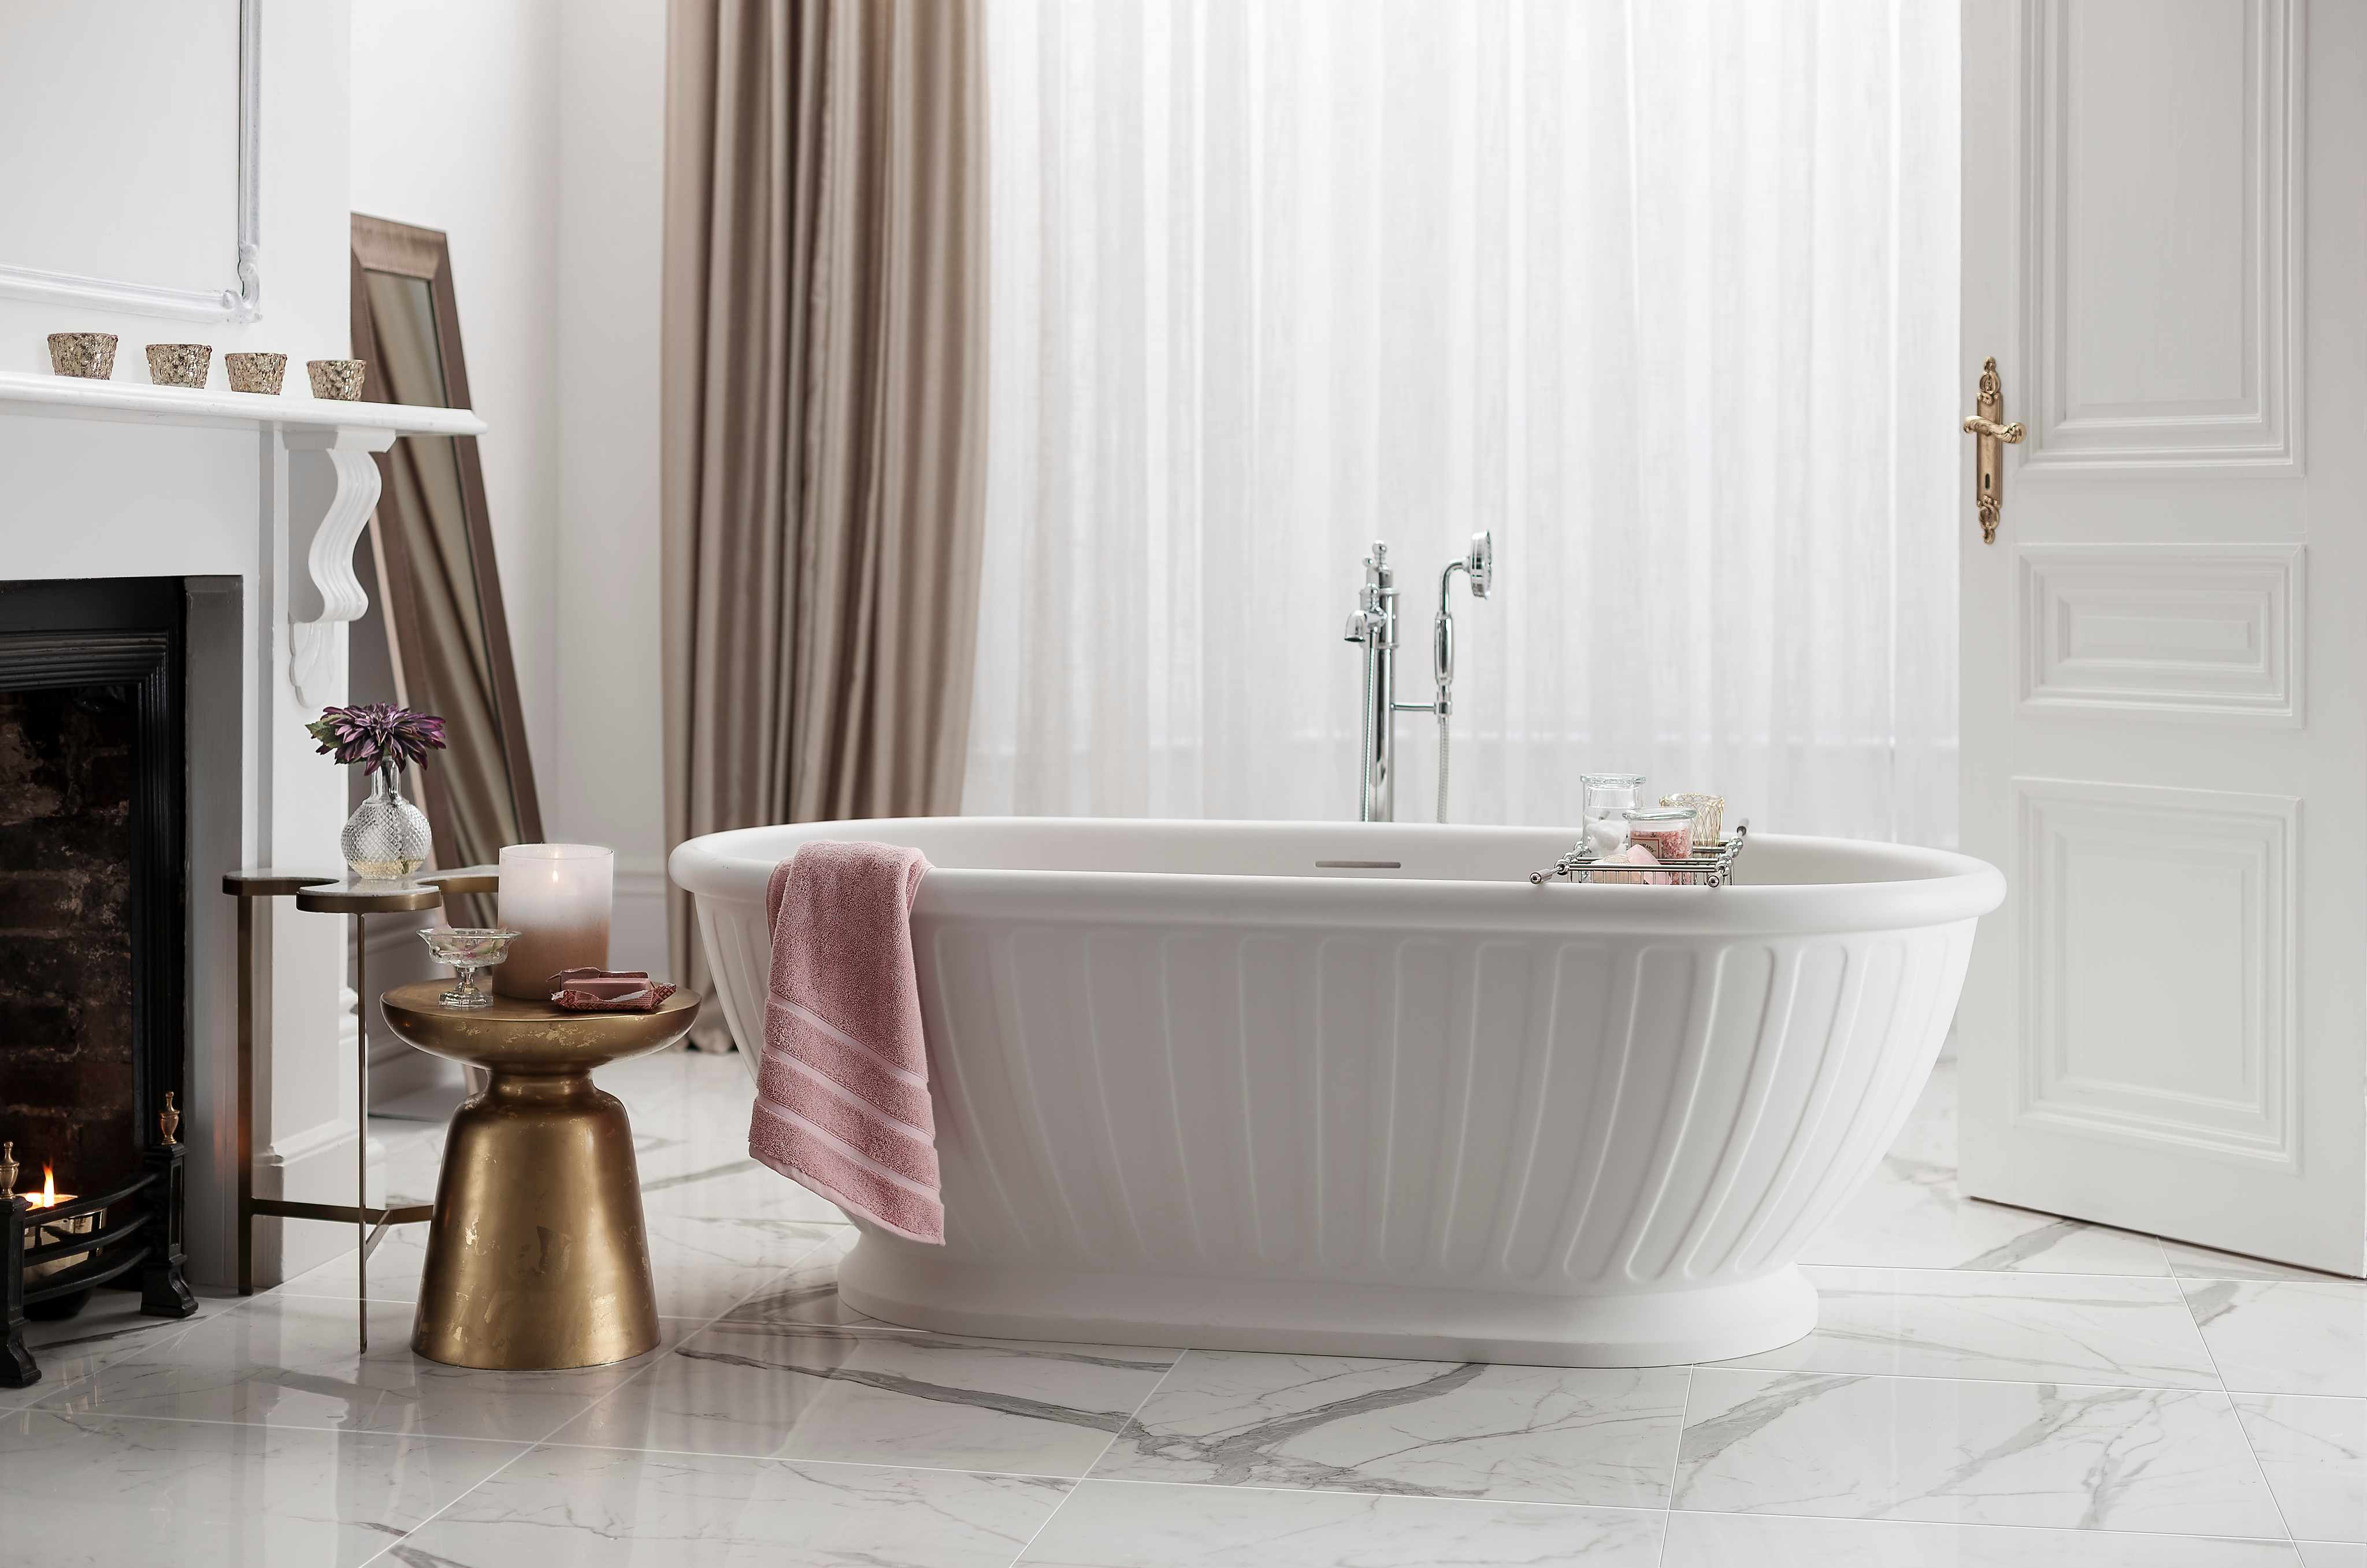 A ripped Burlington bath with a blush pink towel